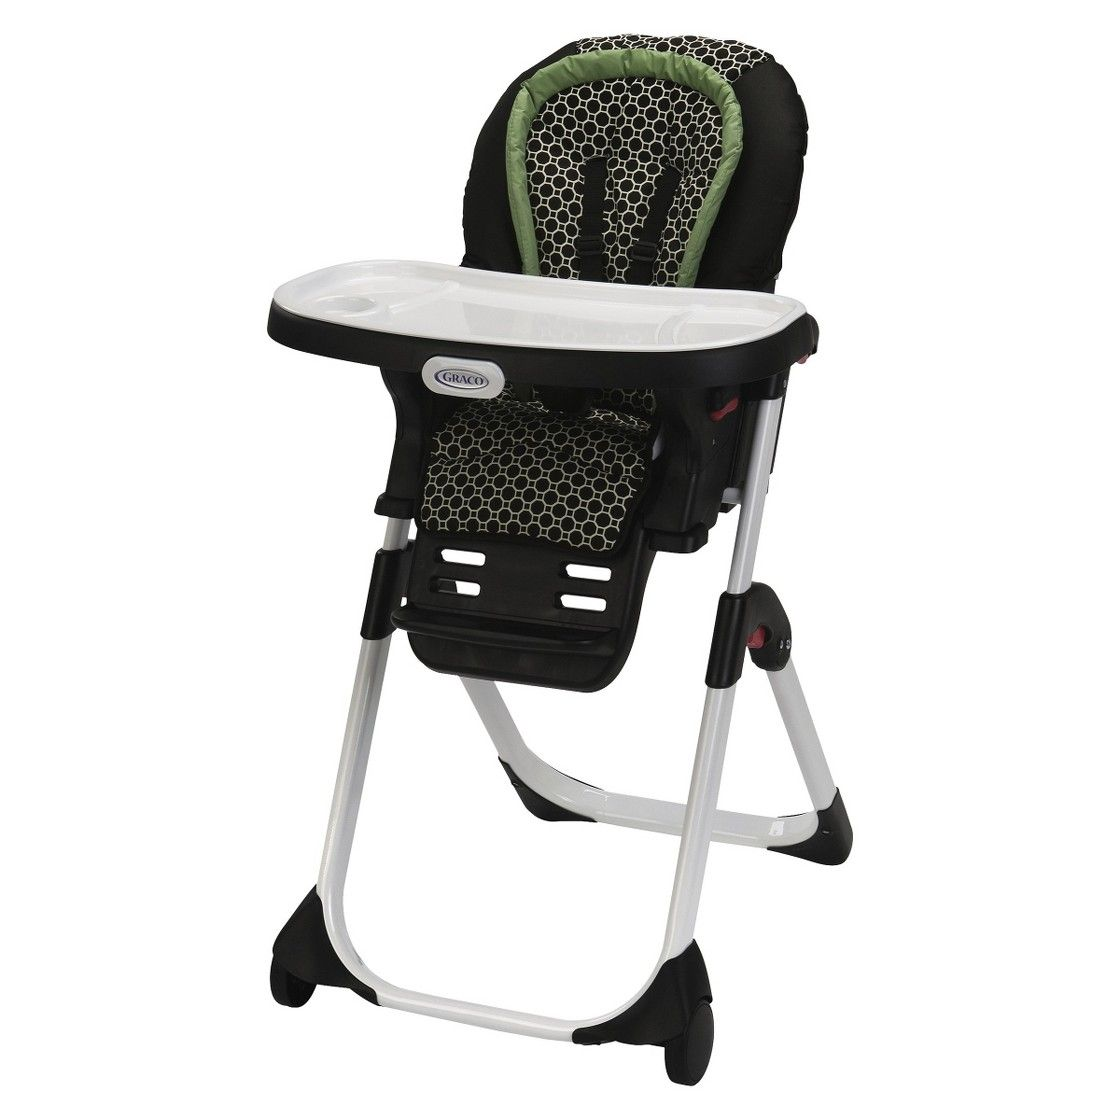 Graco Duodiner Highchair Convertible High Chair